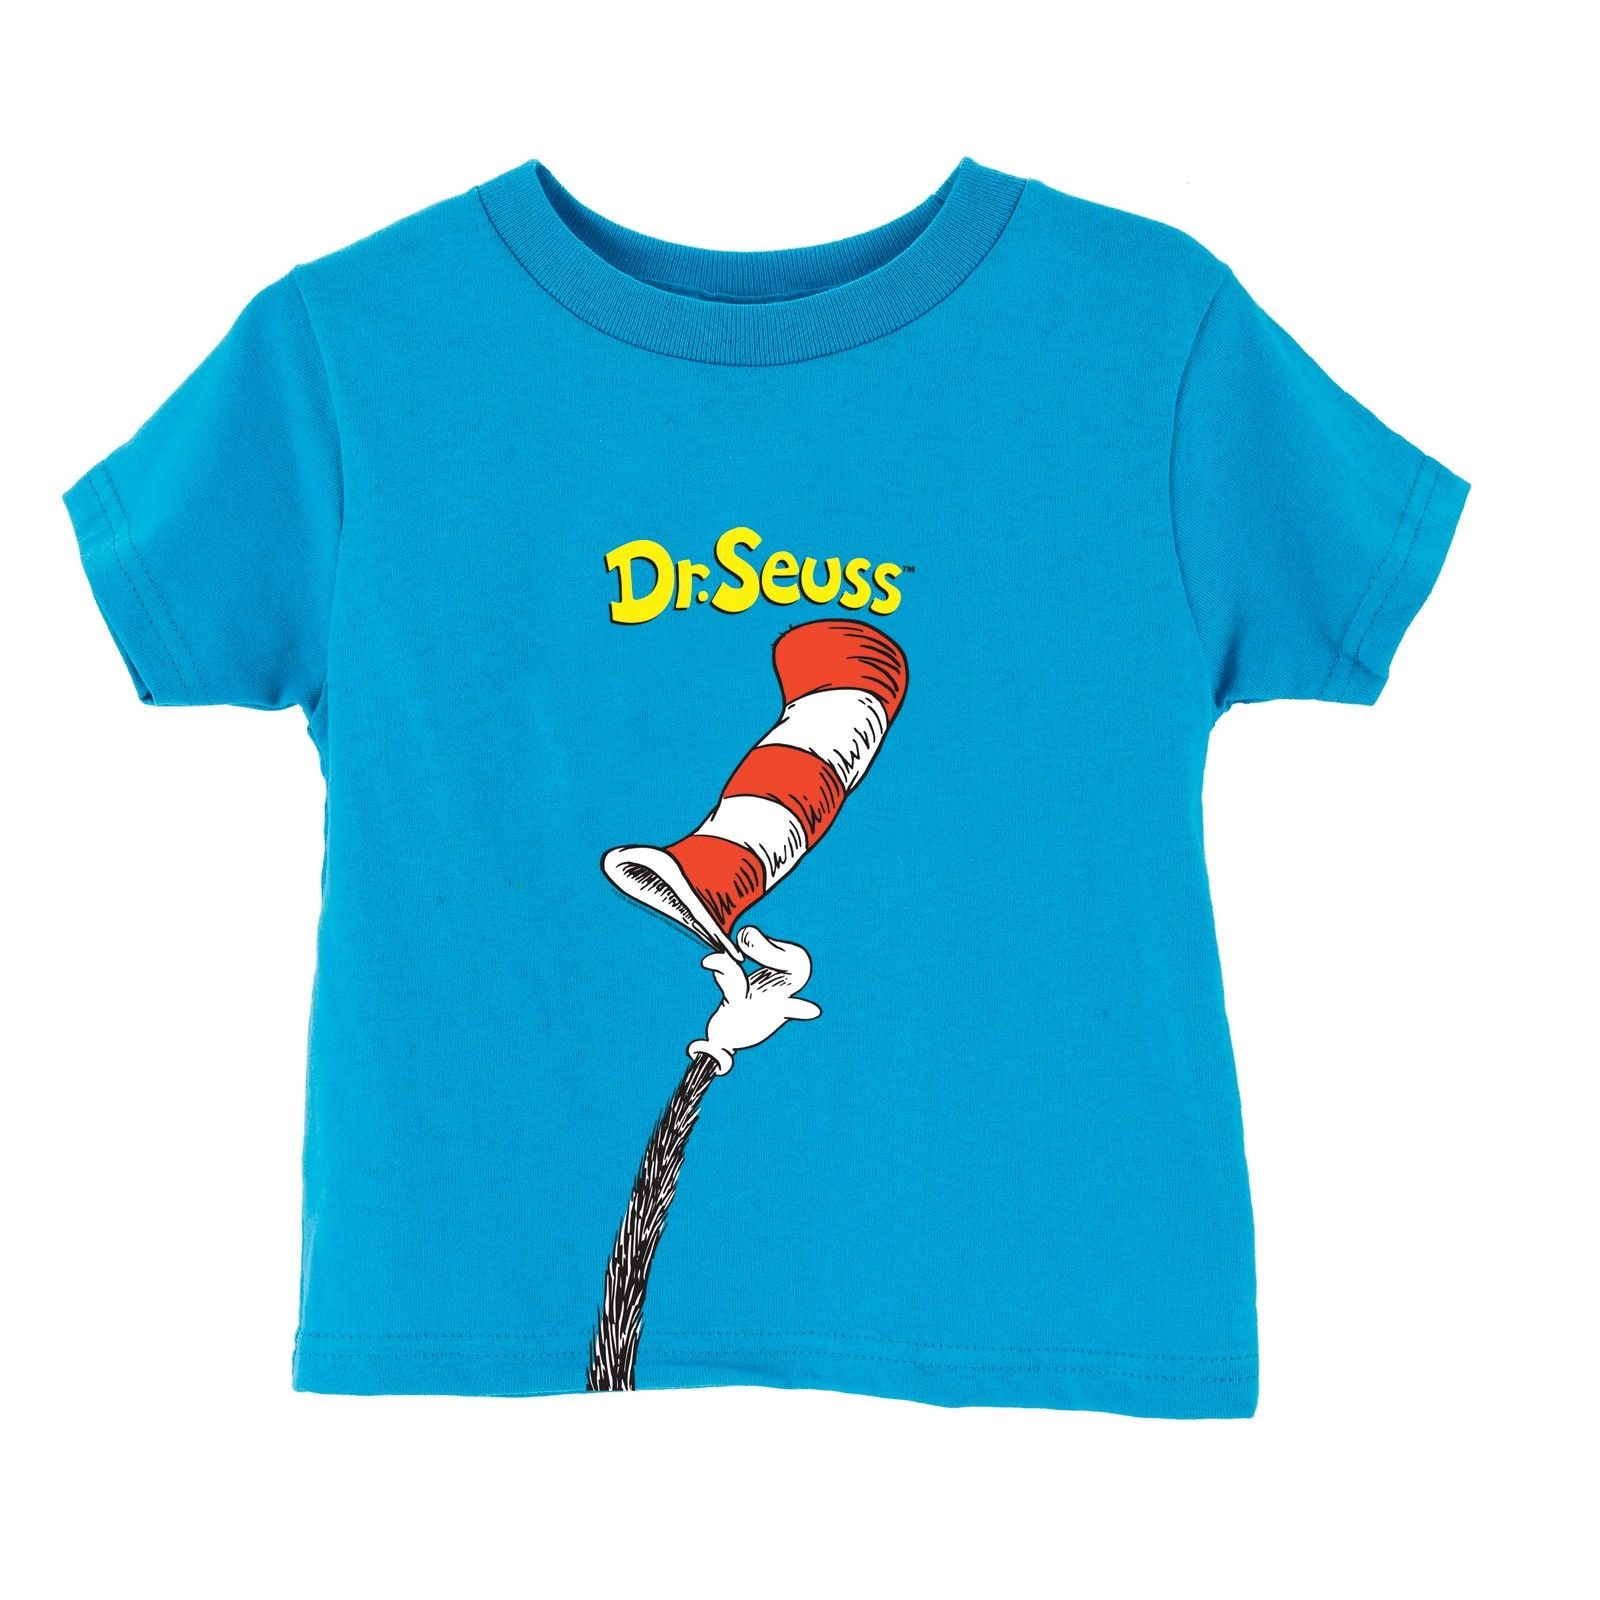 Dr. Seuss T-Shirt | Playeras